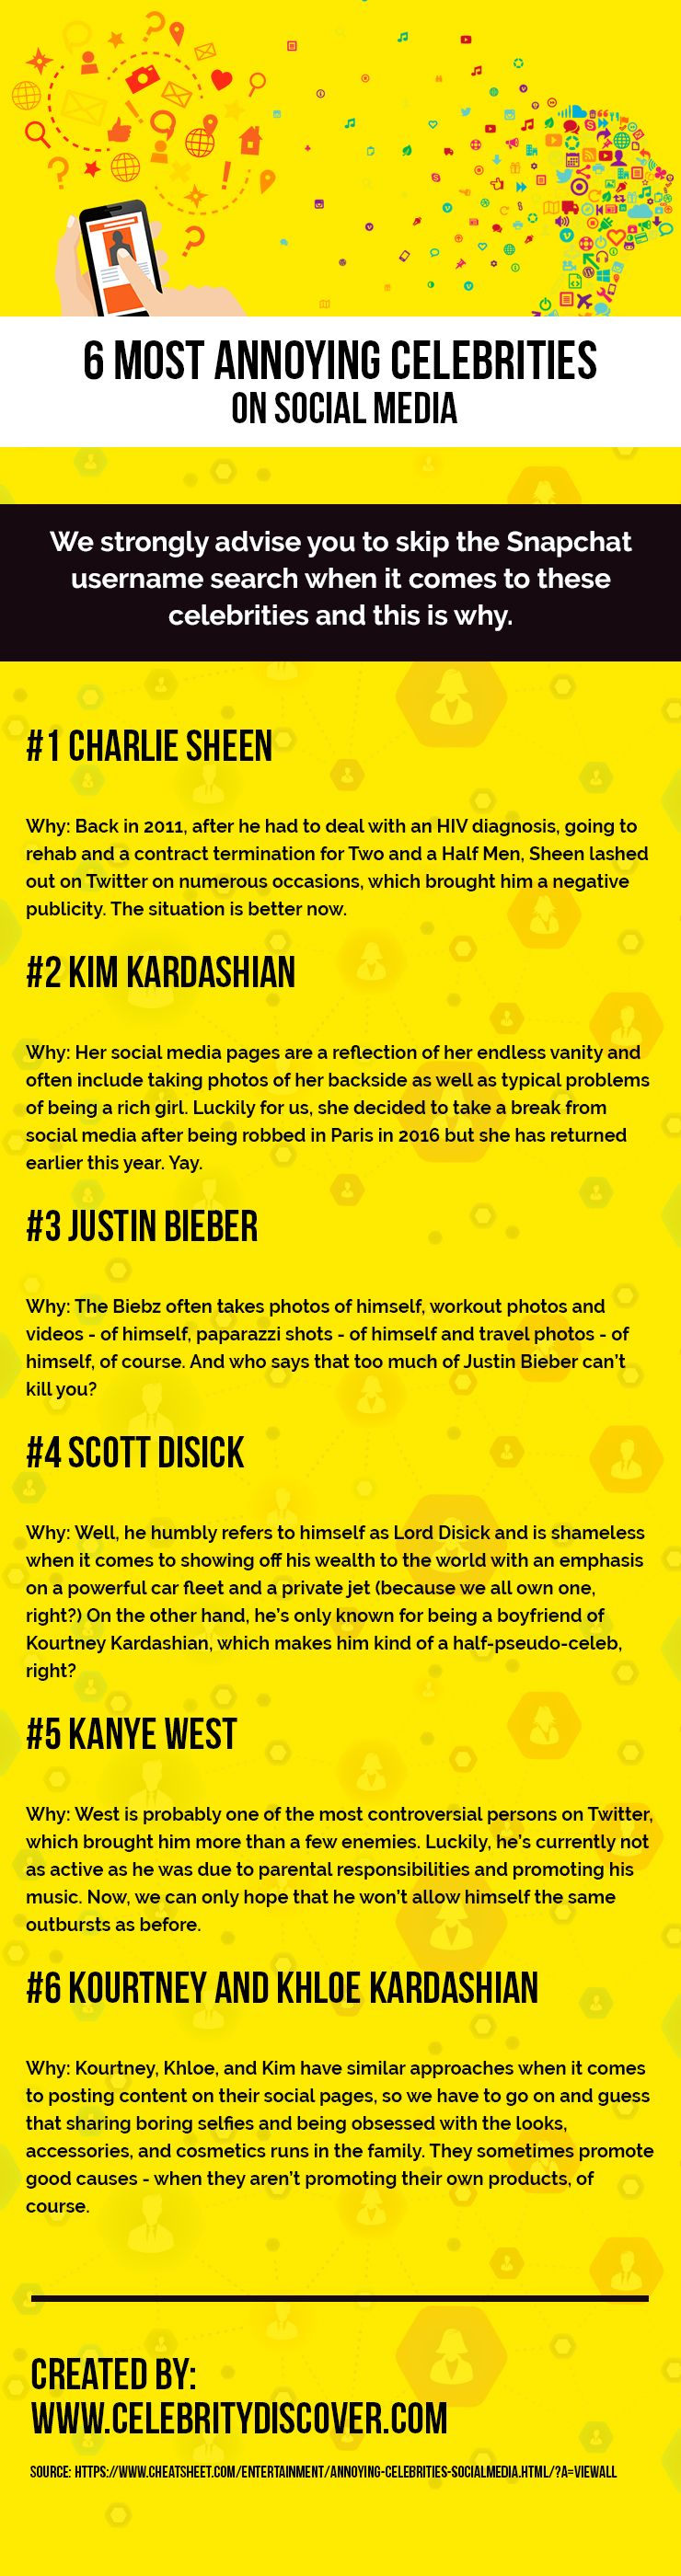 6 Most Annoying Celebrities on Social Media | Celebrities